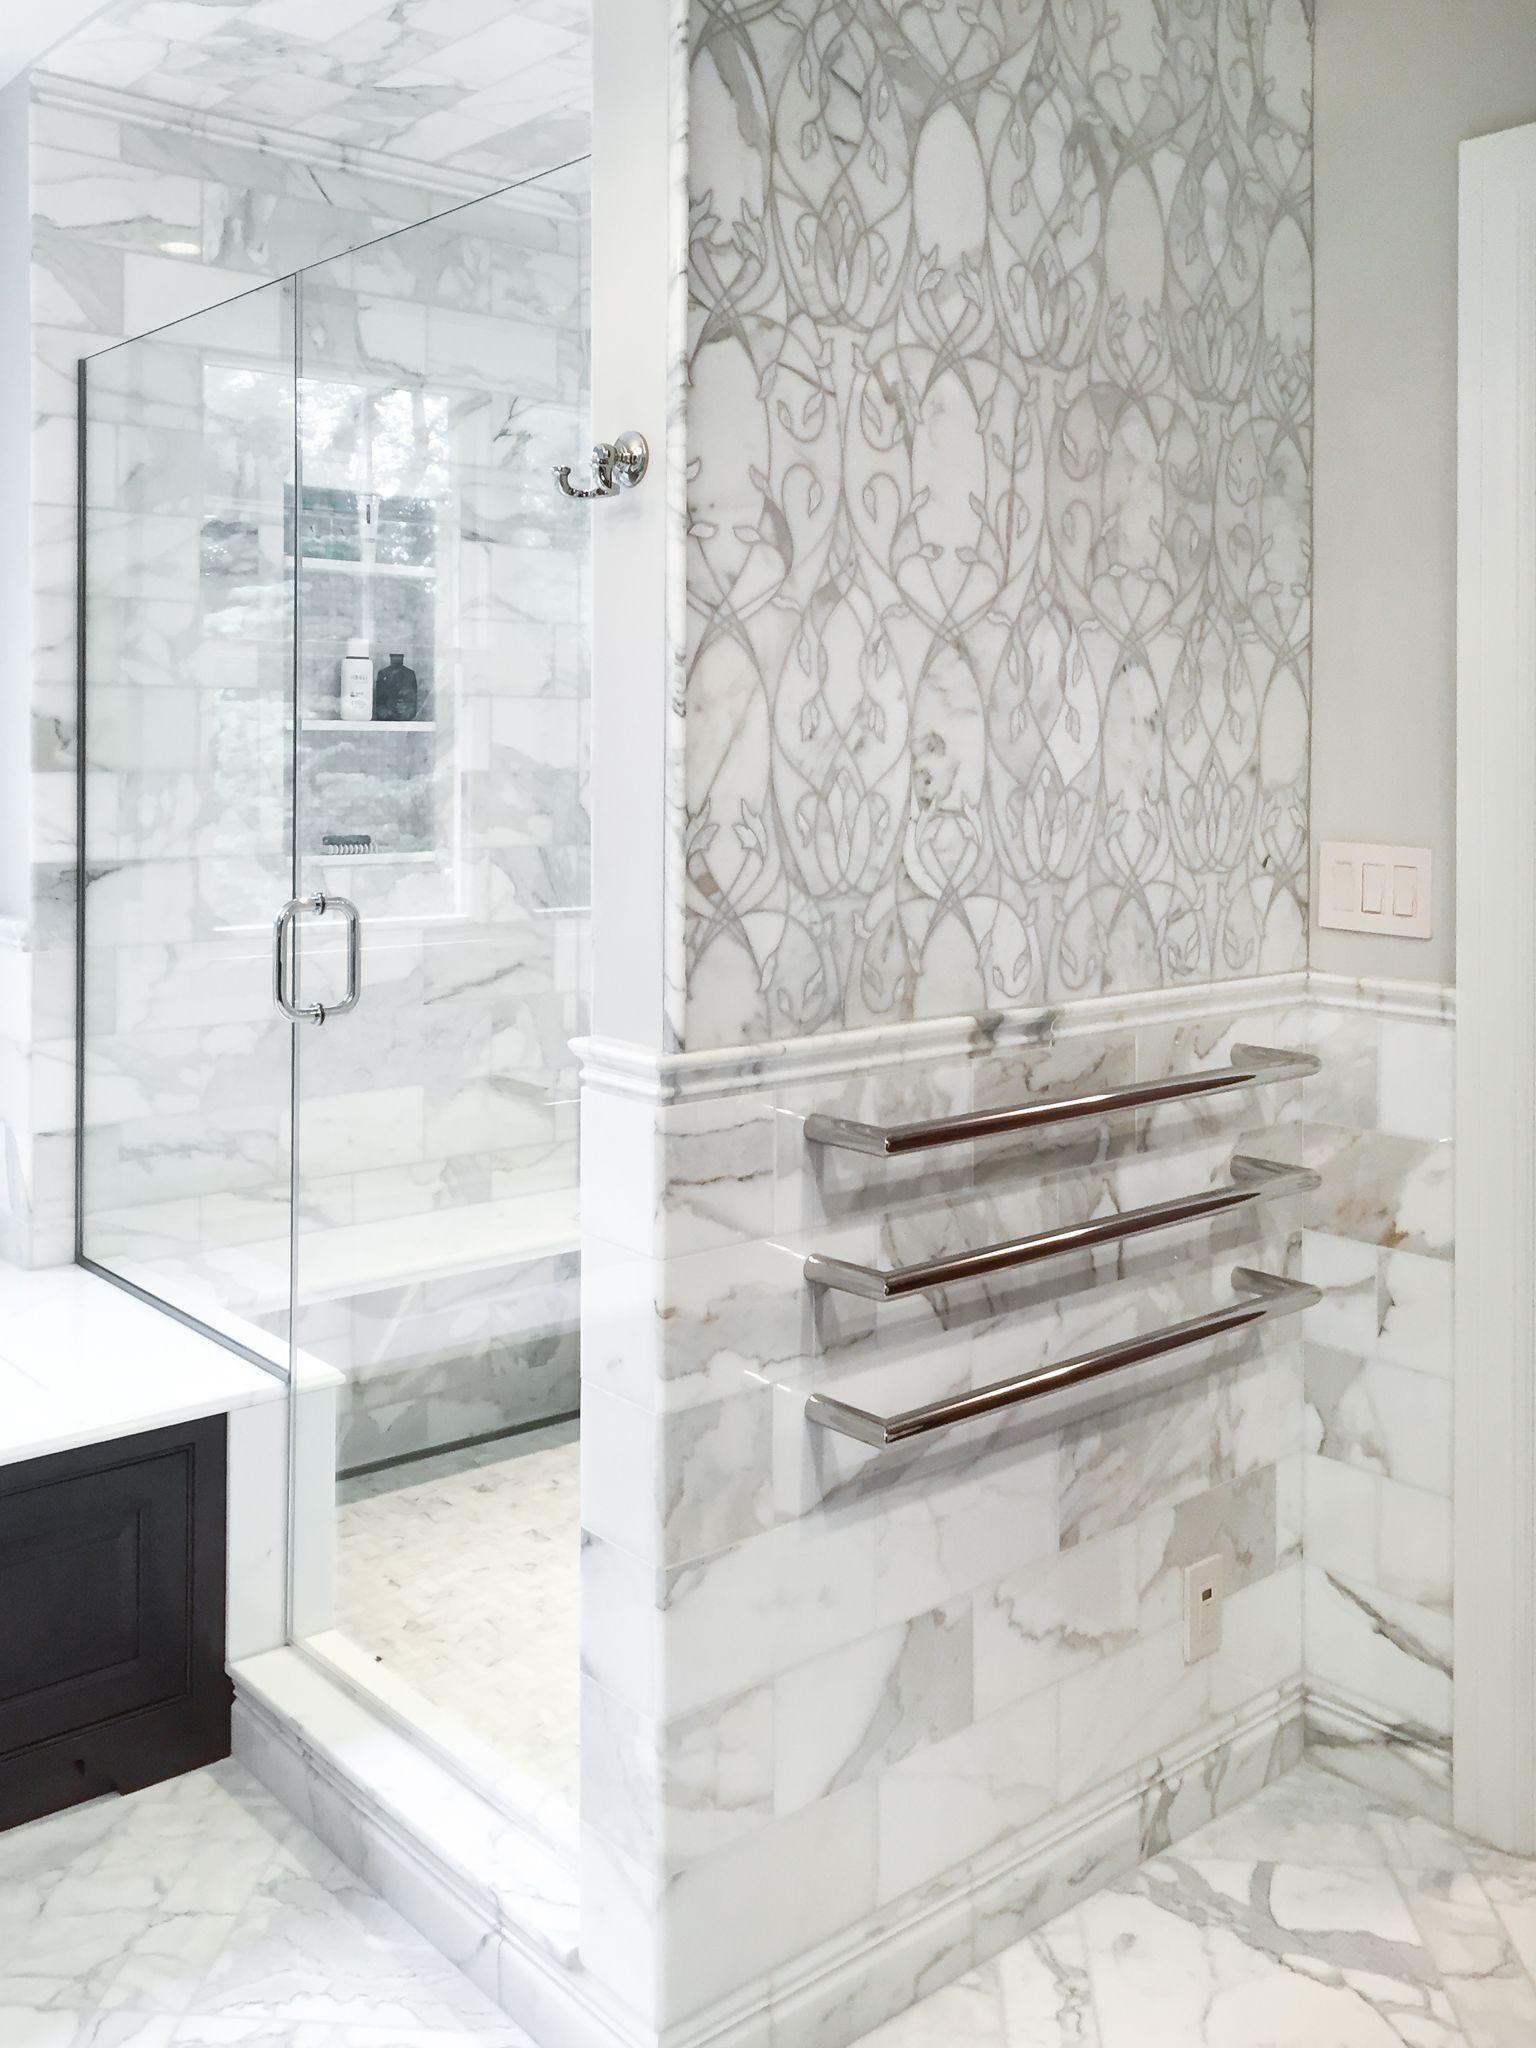 Artistic Tile I This master bathroom is all Calacatta Gold, from the ...